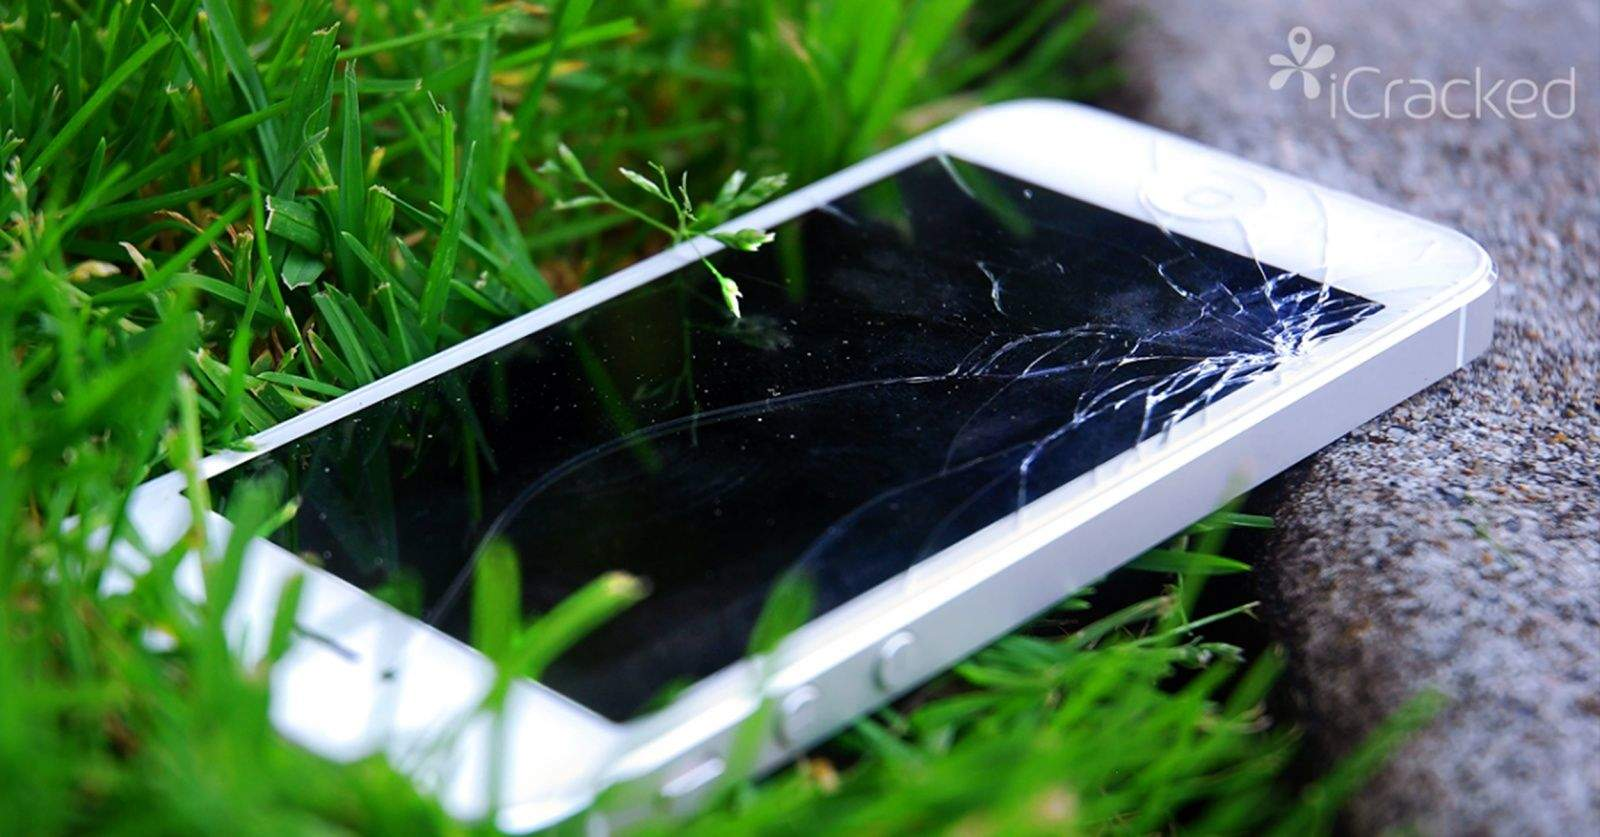 Cracked iPhone screen? iCracked repair tech will come to you